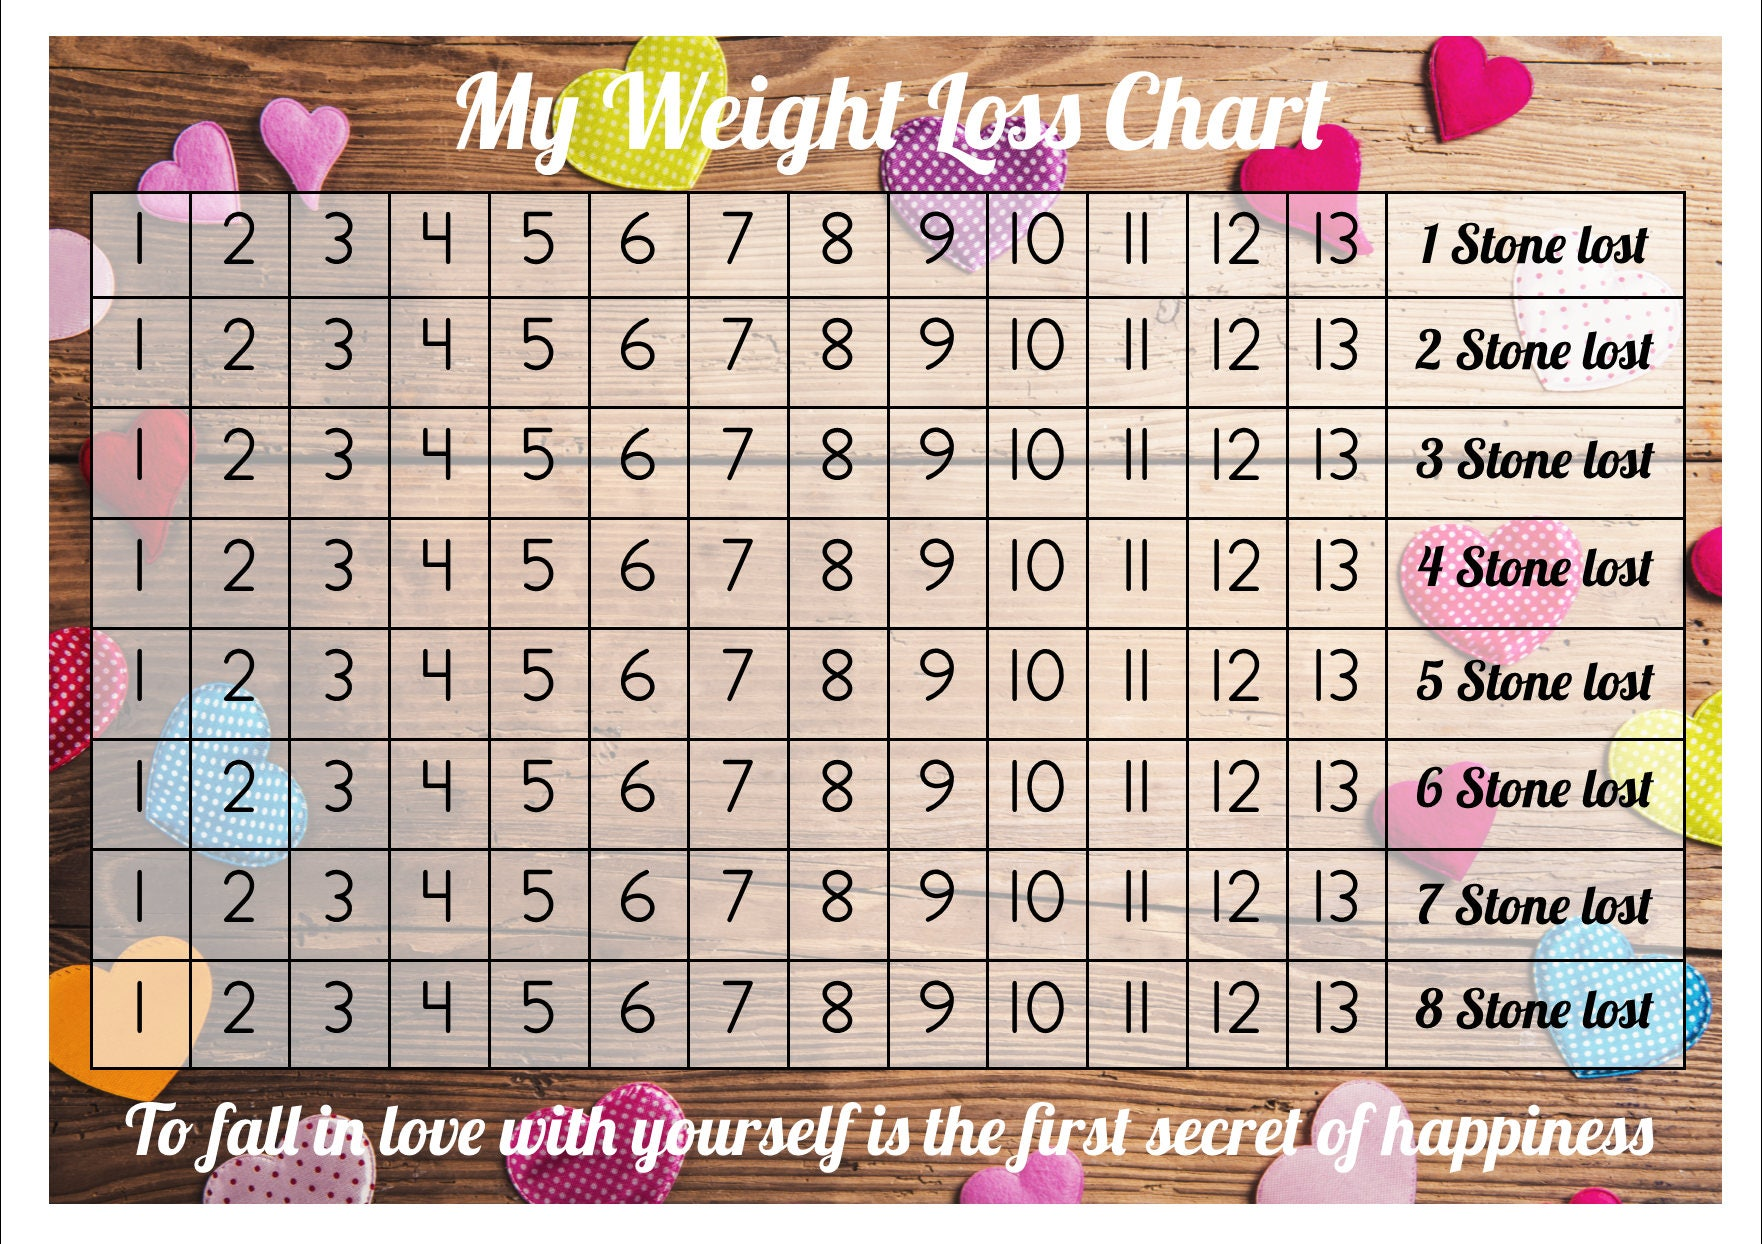 Weight loss chart tracker 8 stone comes with star description weight loss chart tracker nvjuhfo Images